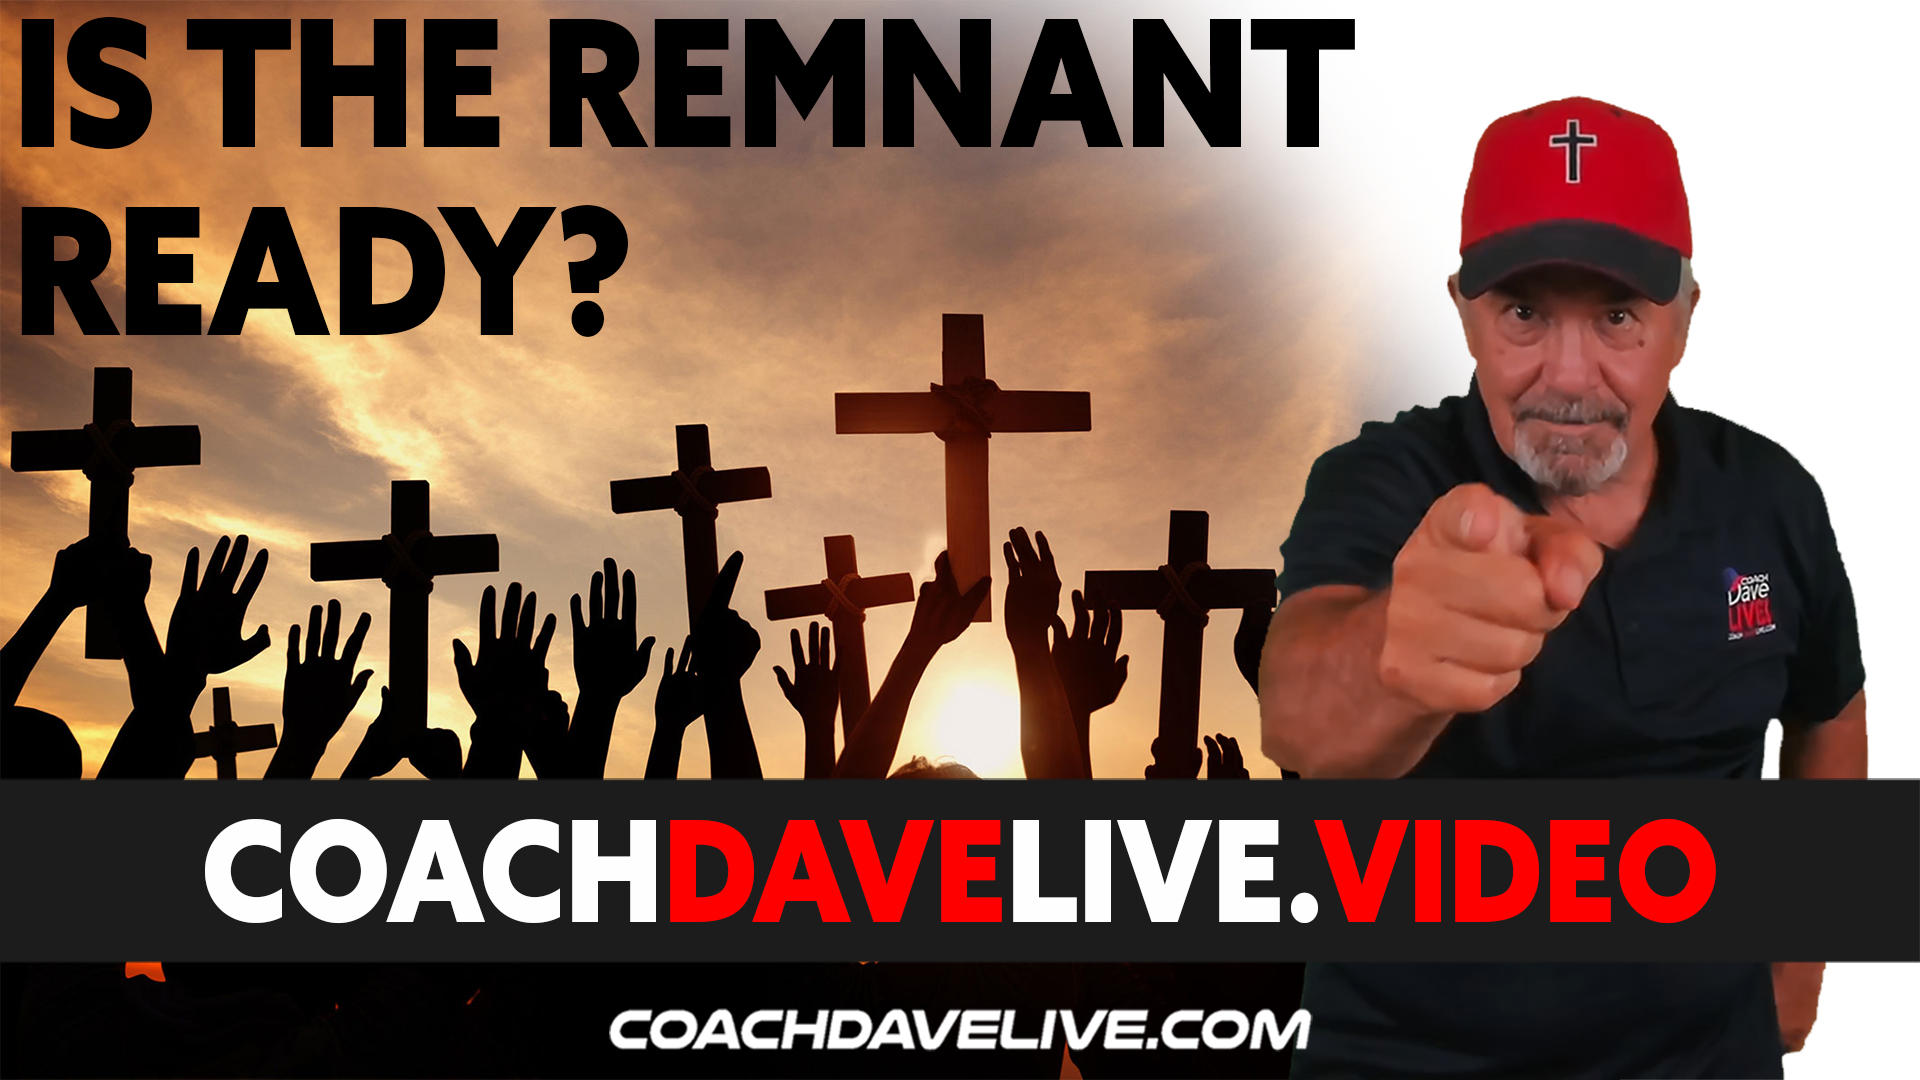 Coach Dave LIVE | 9-1-2021 | IS THE REMNANT READY?